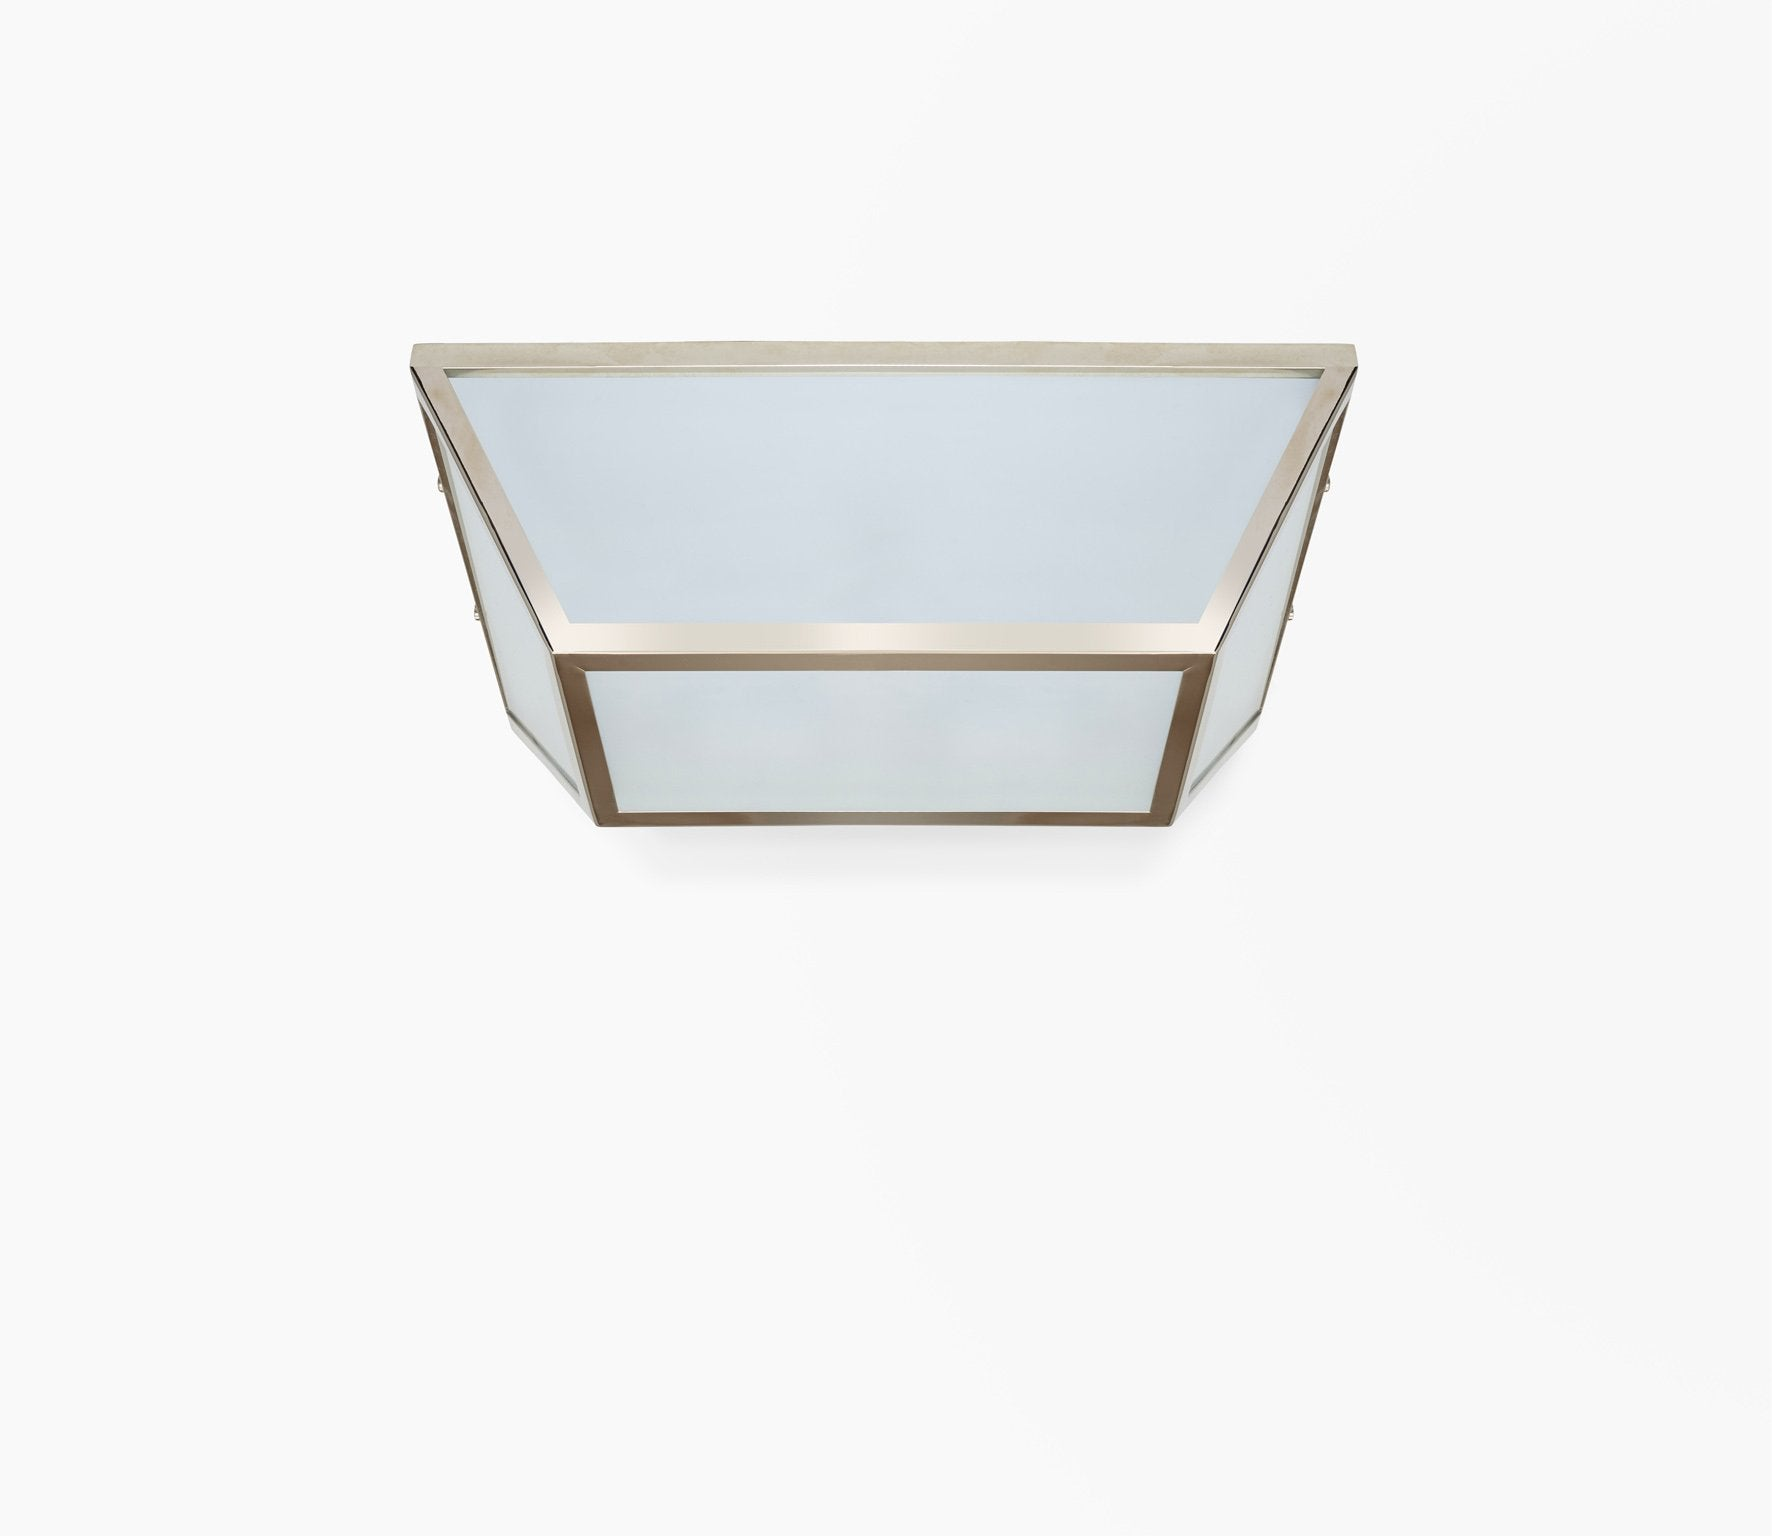 Strand Ceiling Light Product Image 1